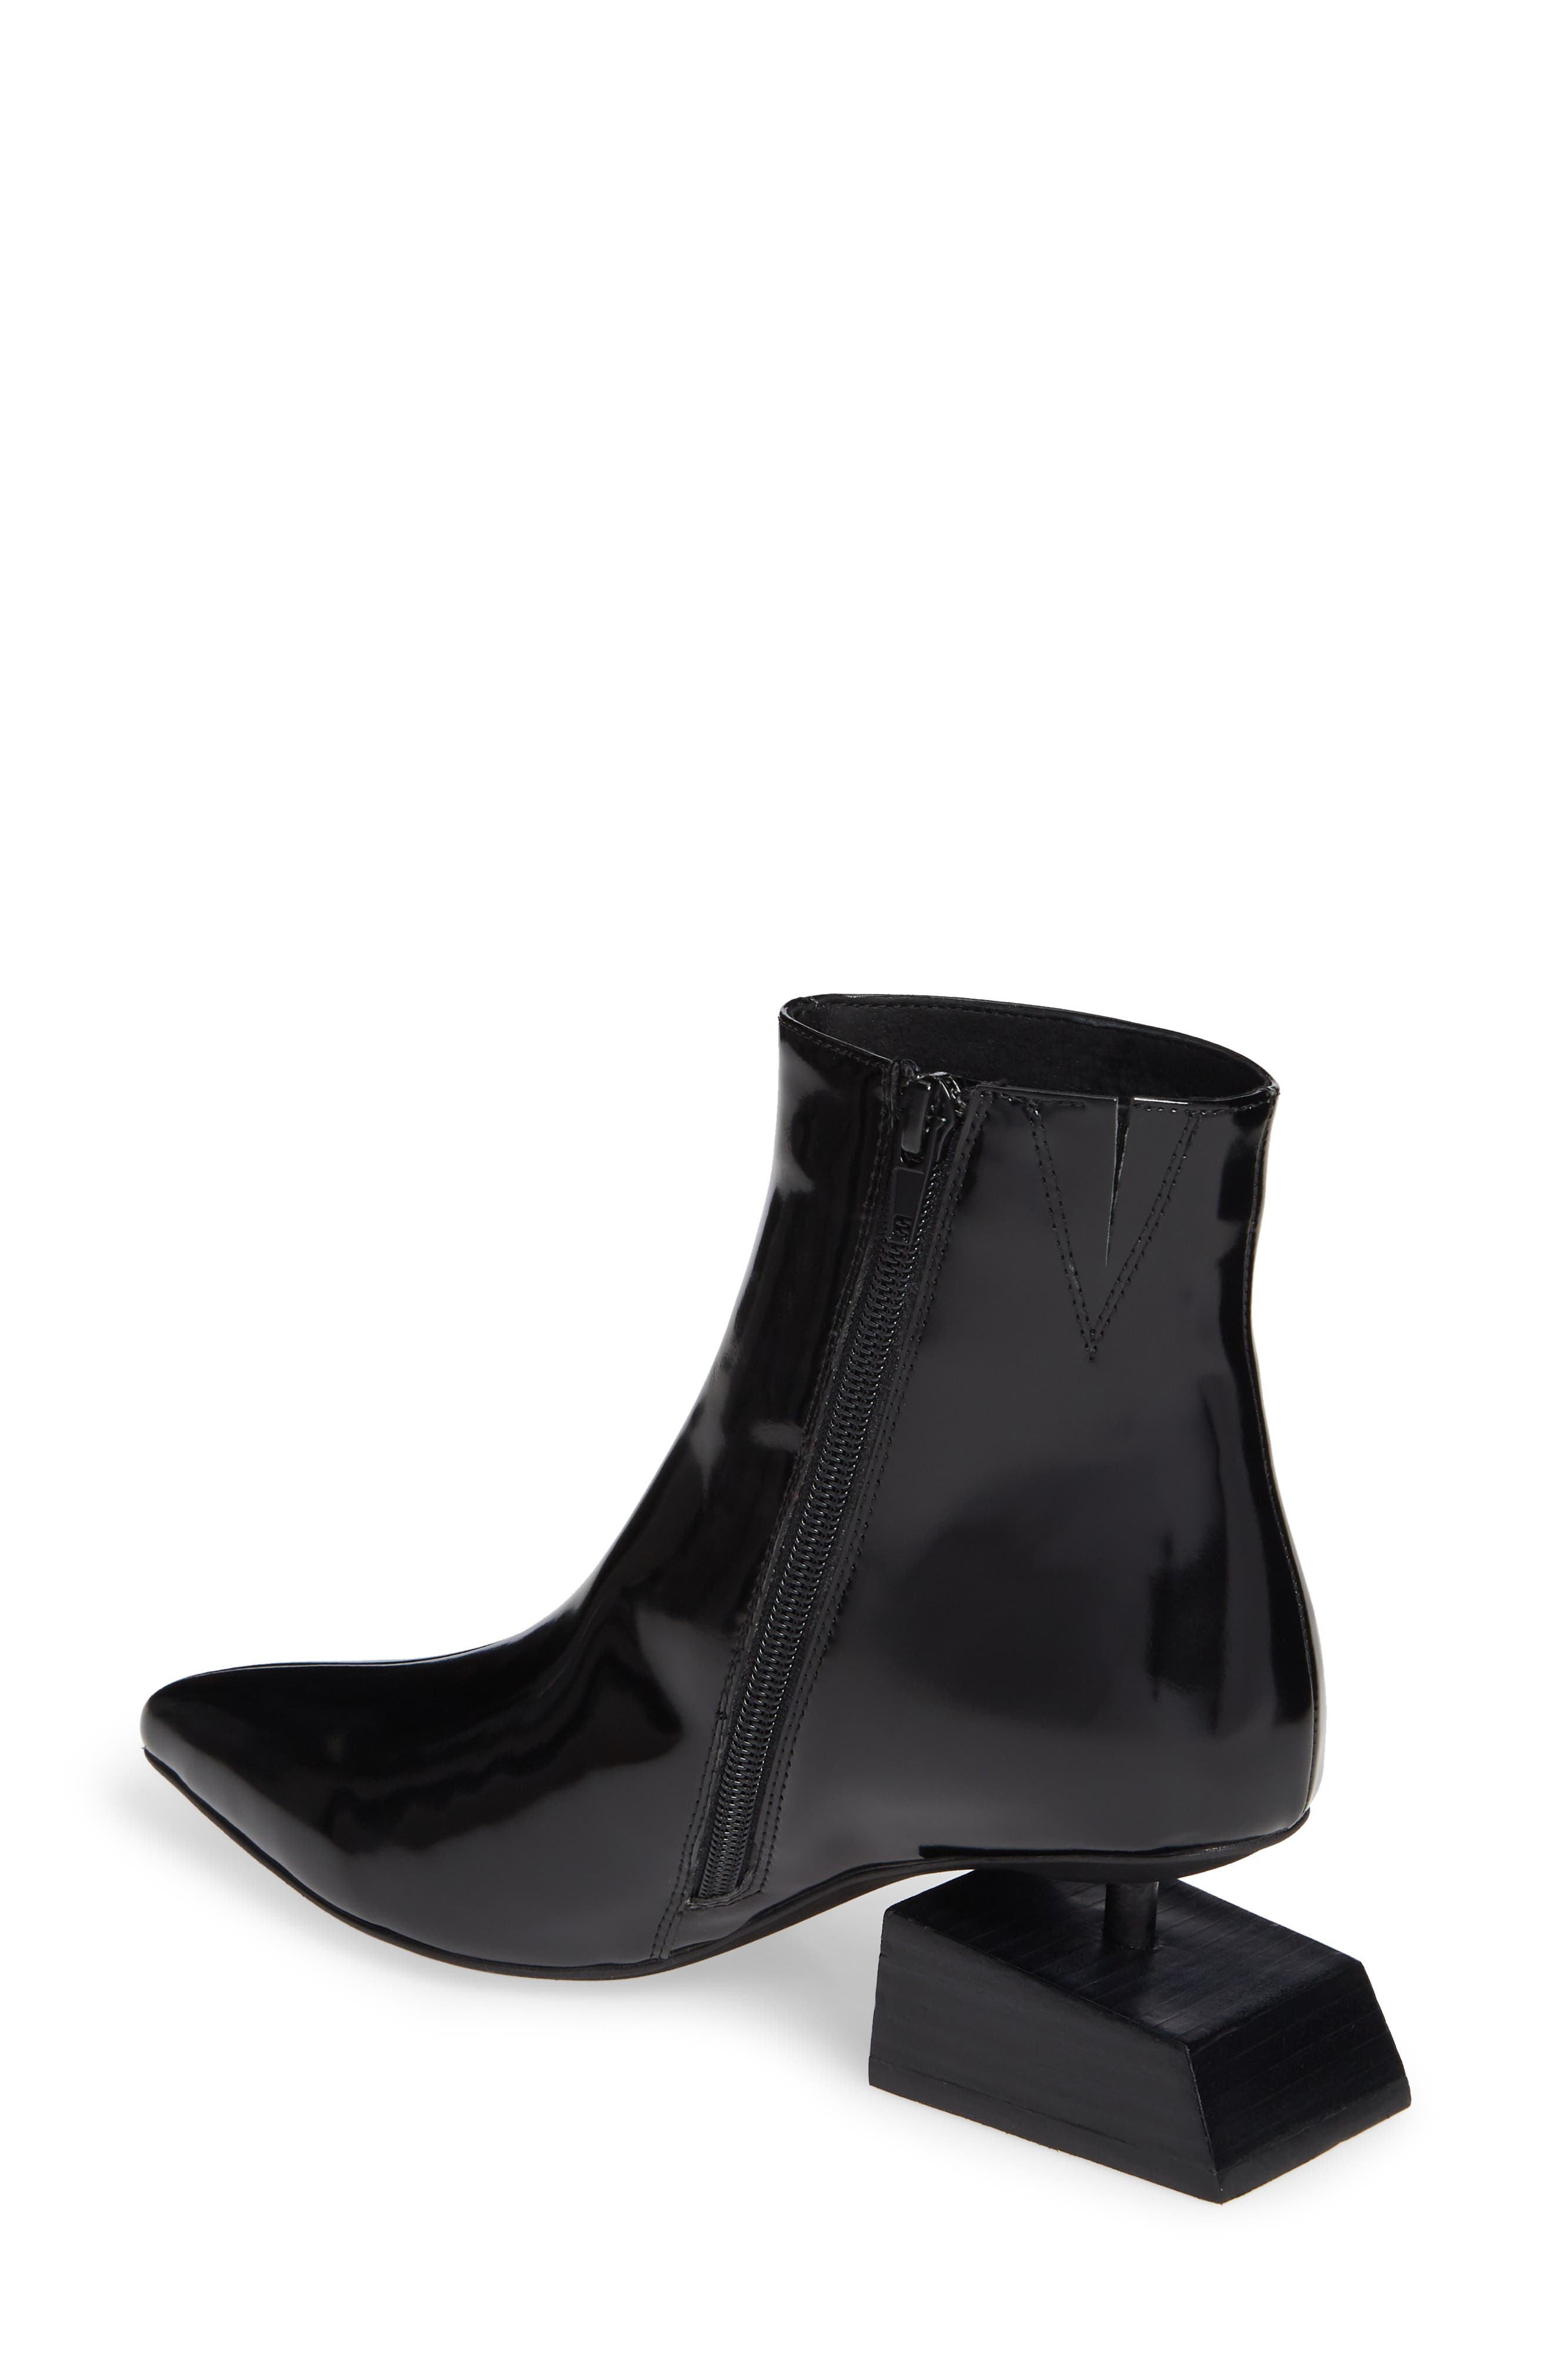 JEFFREY CAMPBELL, Anatomic Boot, Alternate thumbnail 2, color, BLACK LEATHER